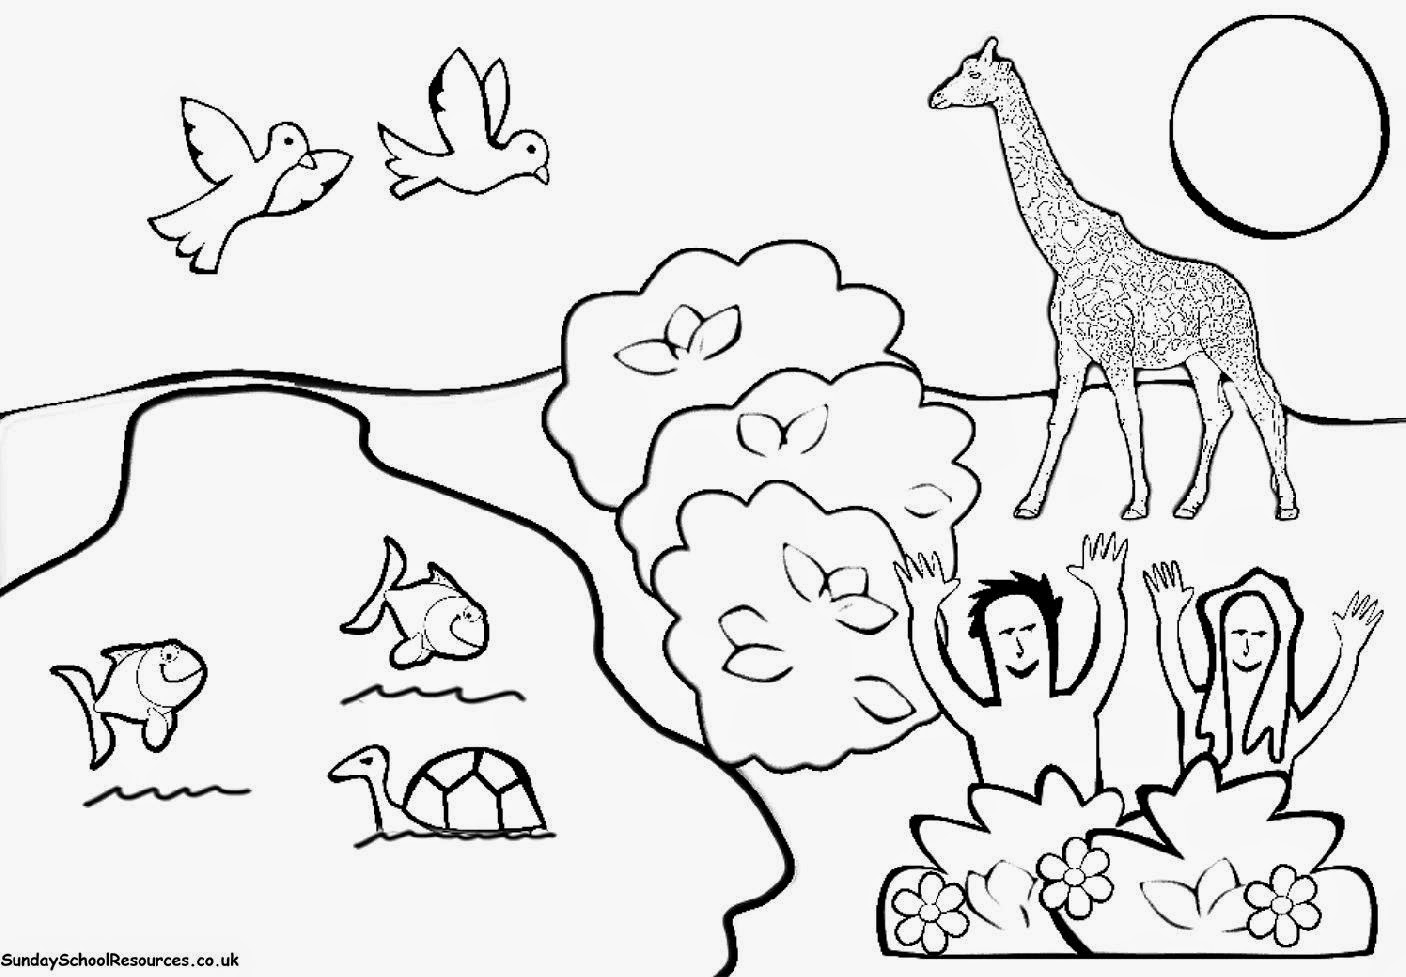 Creation Day 6 Coloring Pages